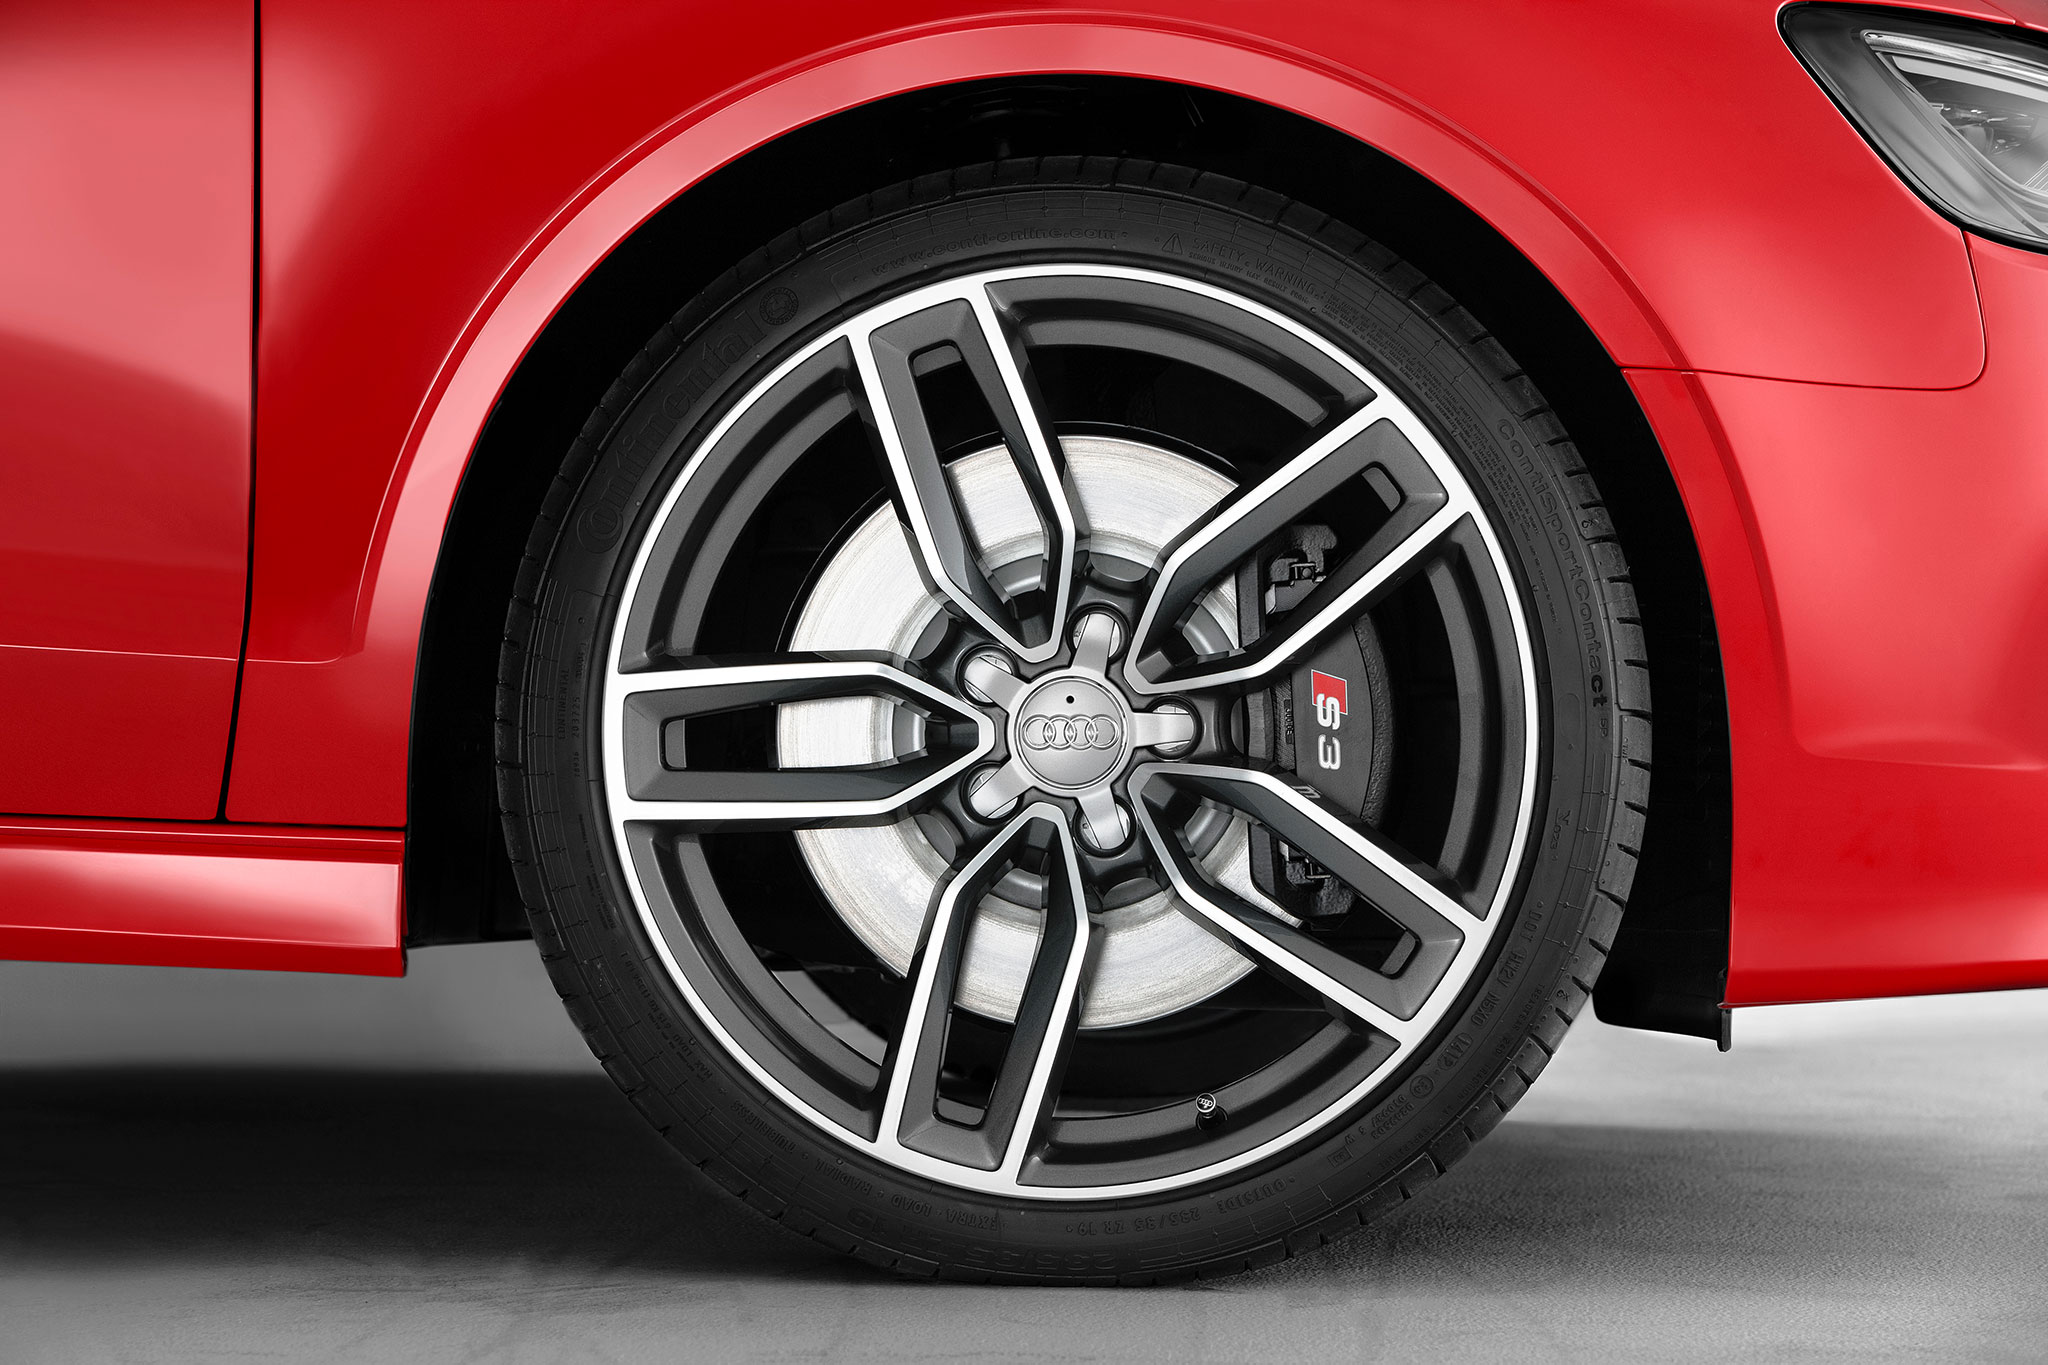 Audi A3: Wired For Cross-Branding - Noise, Vibration & Harshness